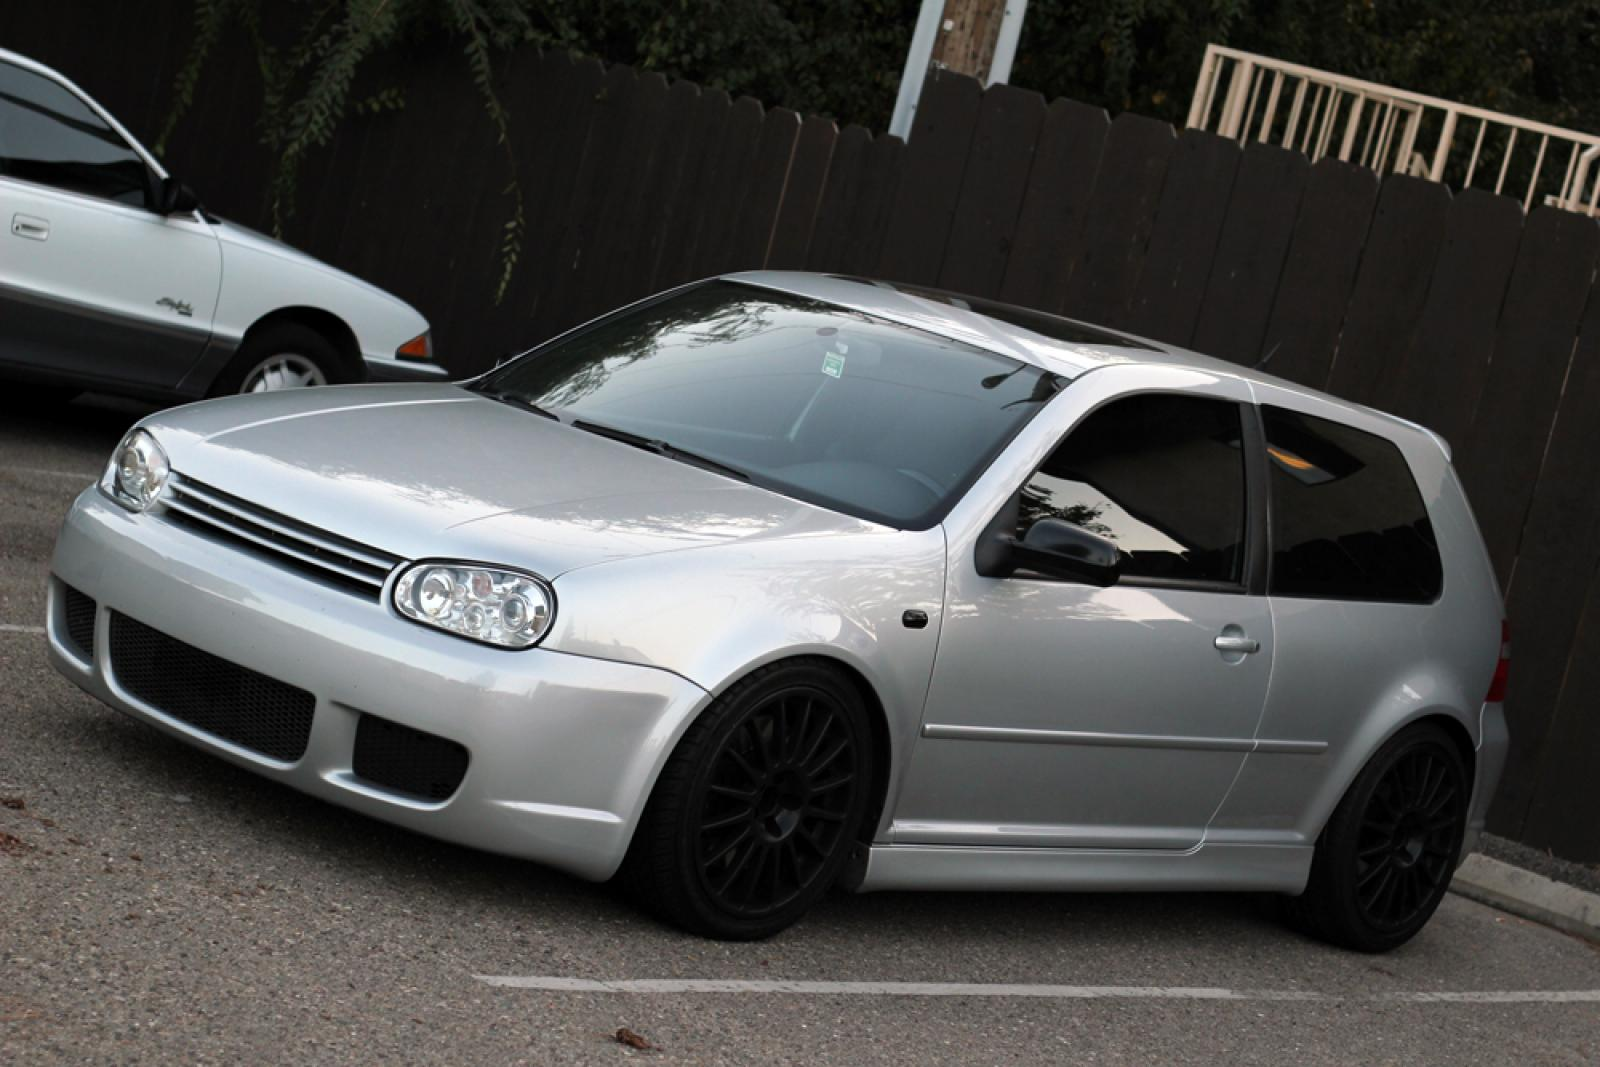 2004 volkswagen r32 information and photos zombiedrive. Black Bedroom Furniture Sets. Home Design Ideas